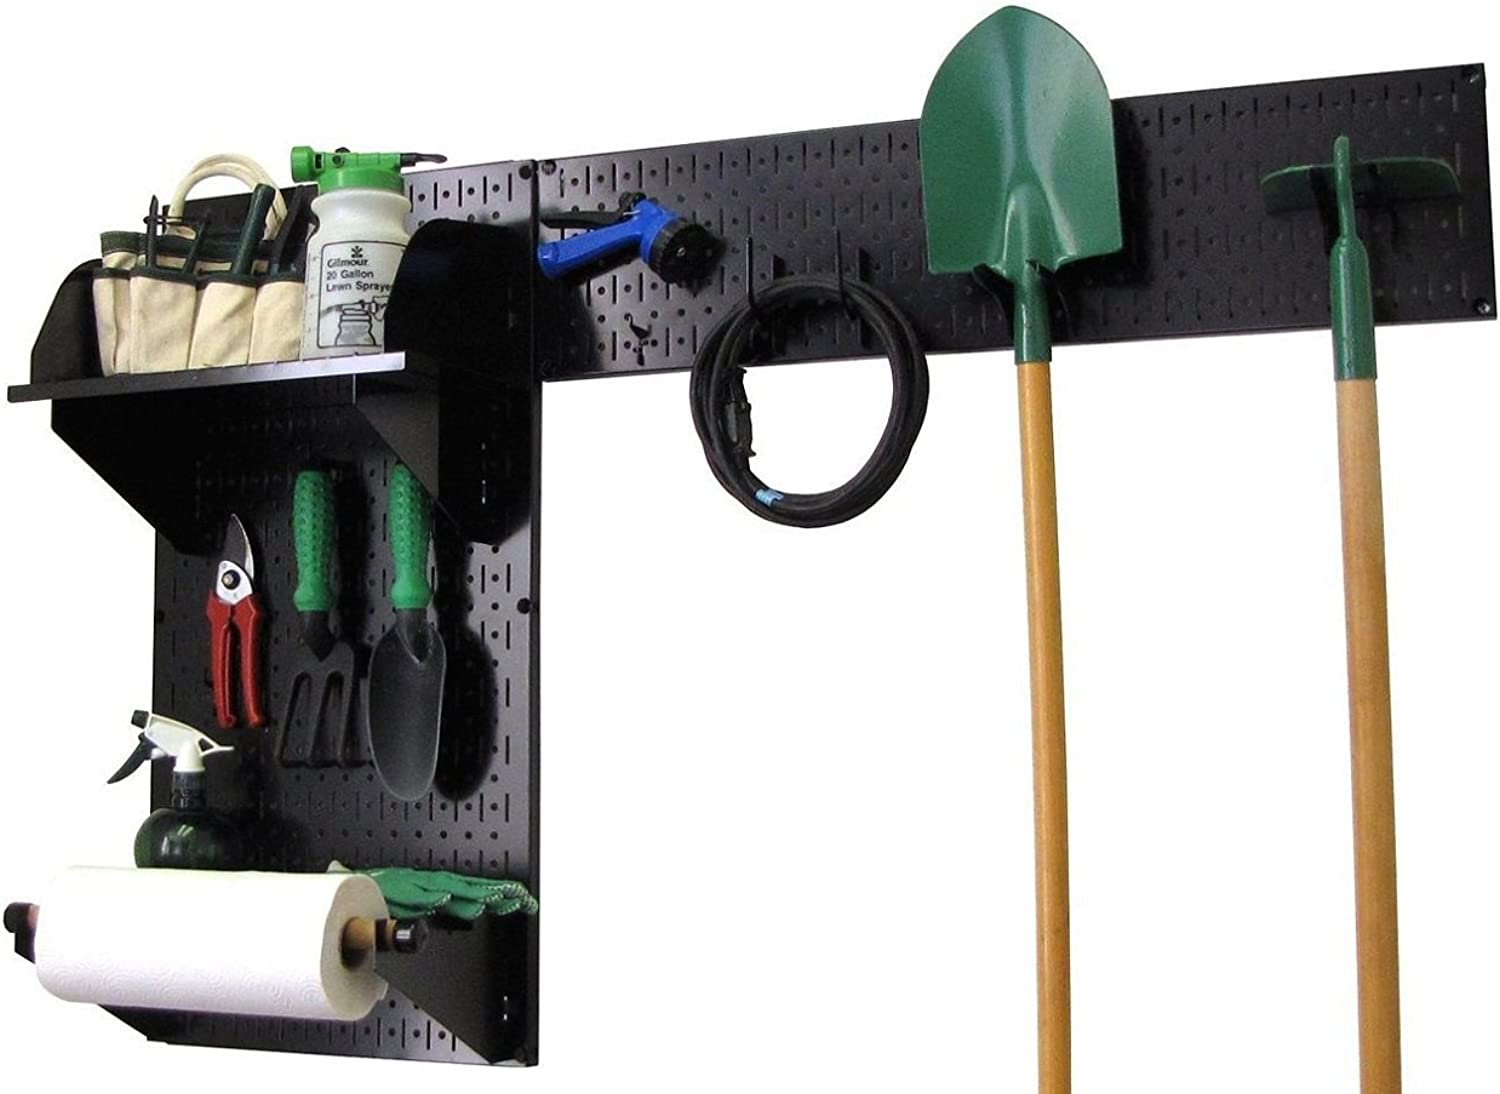 Wall Control Pegboard Garden Supplies Storage and Organization Garden Tool Organizer Kit with Black Pegboard and Black Accessories